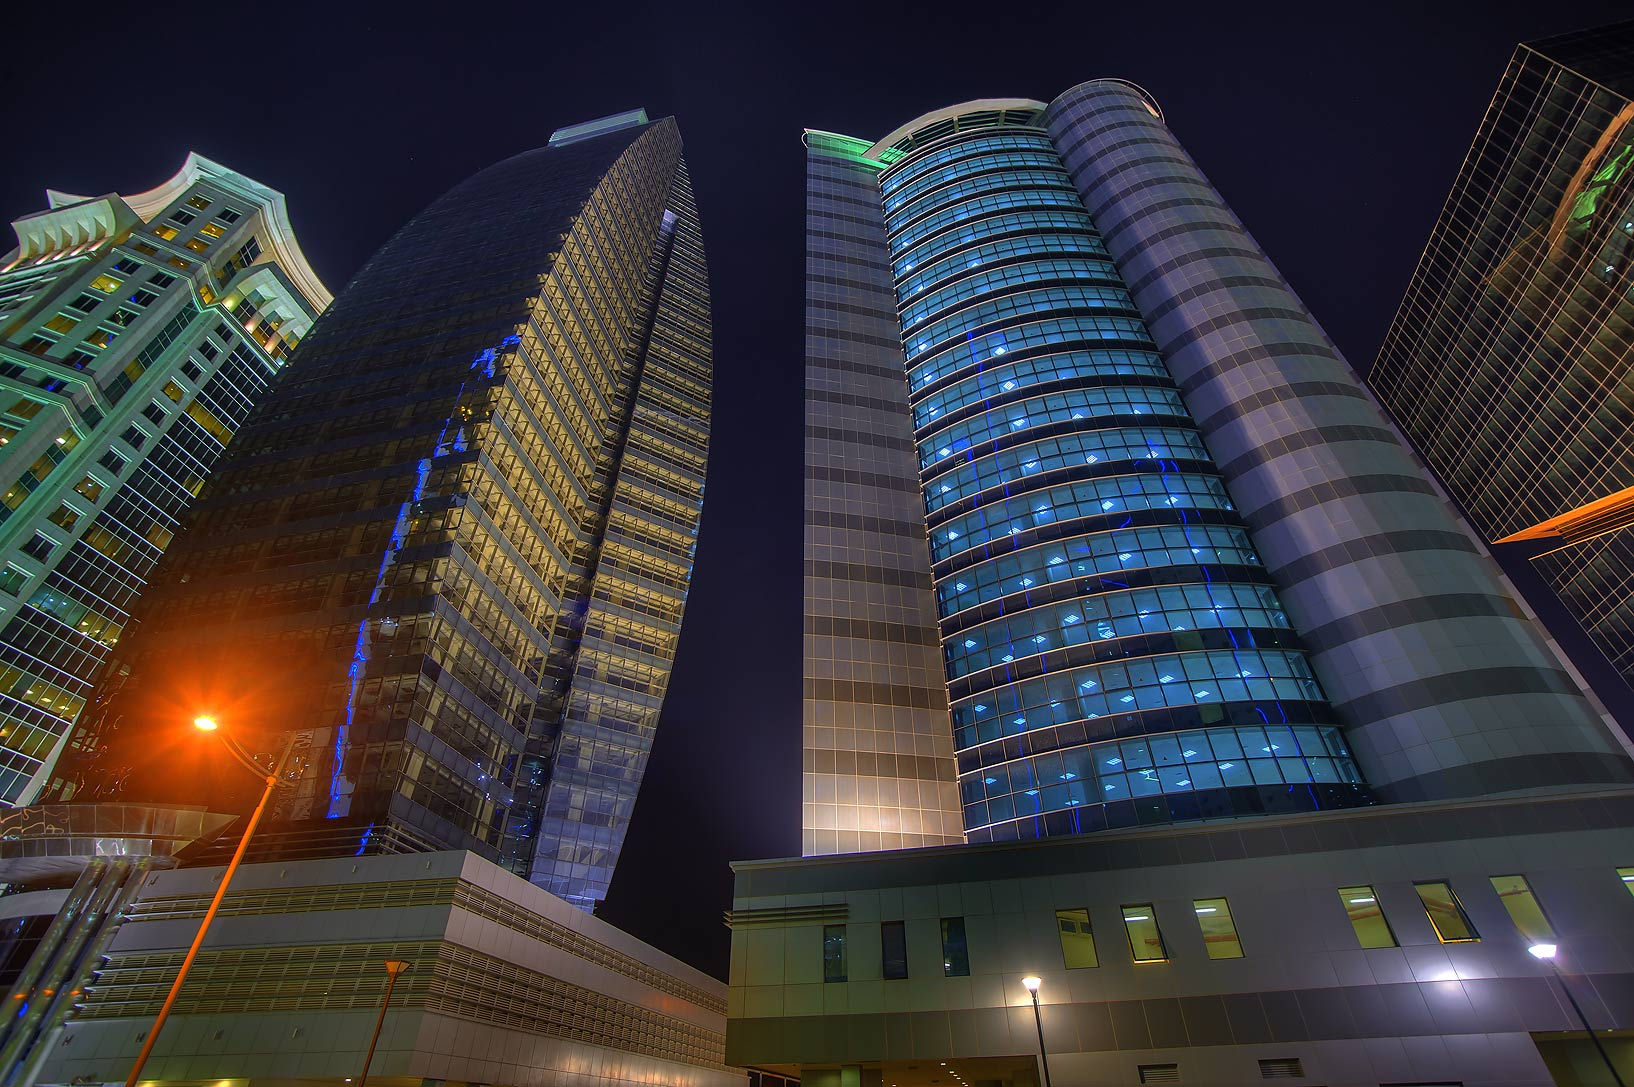 Taawun and Al Huda Engineering Works towers at Al Betra St. in West Bay. Doha, Qatar